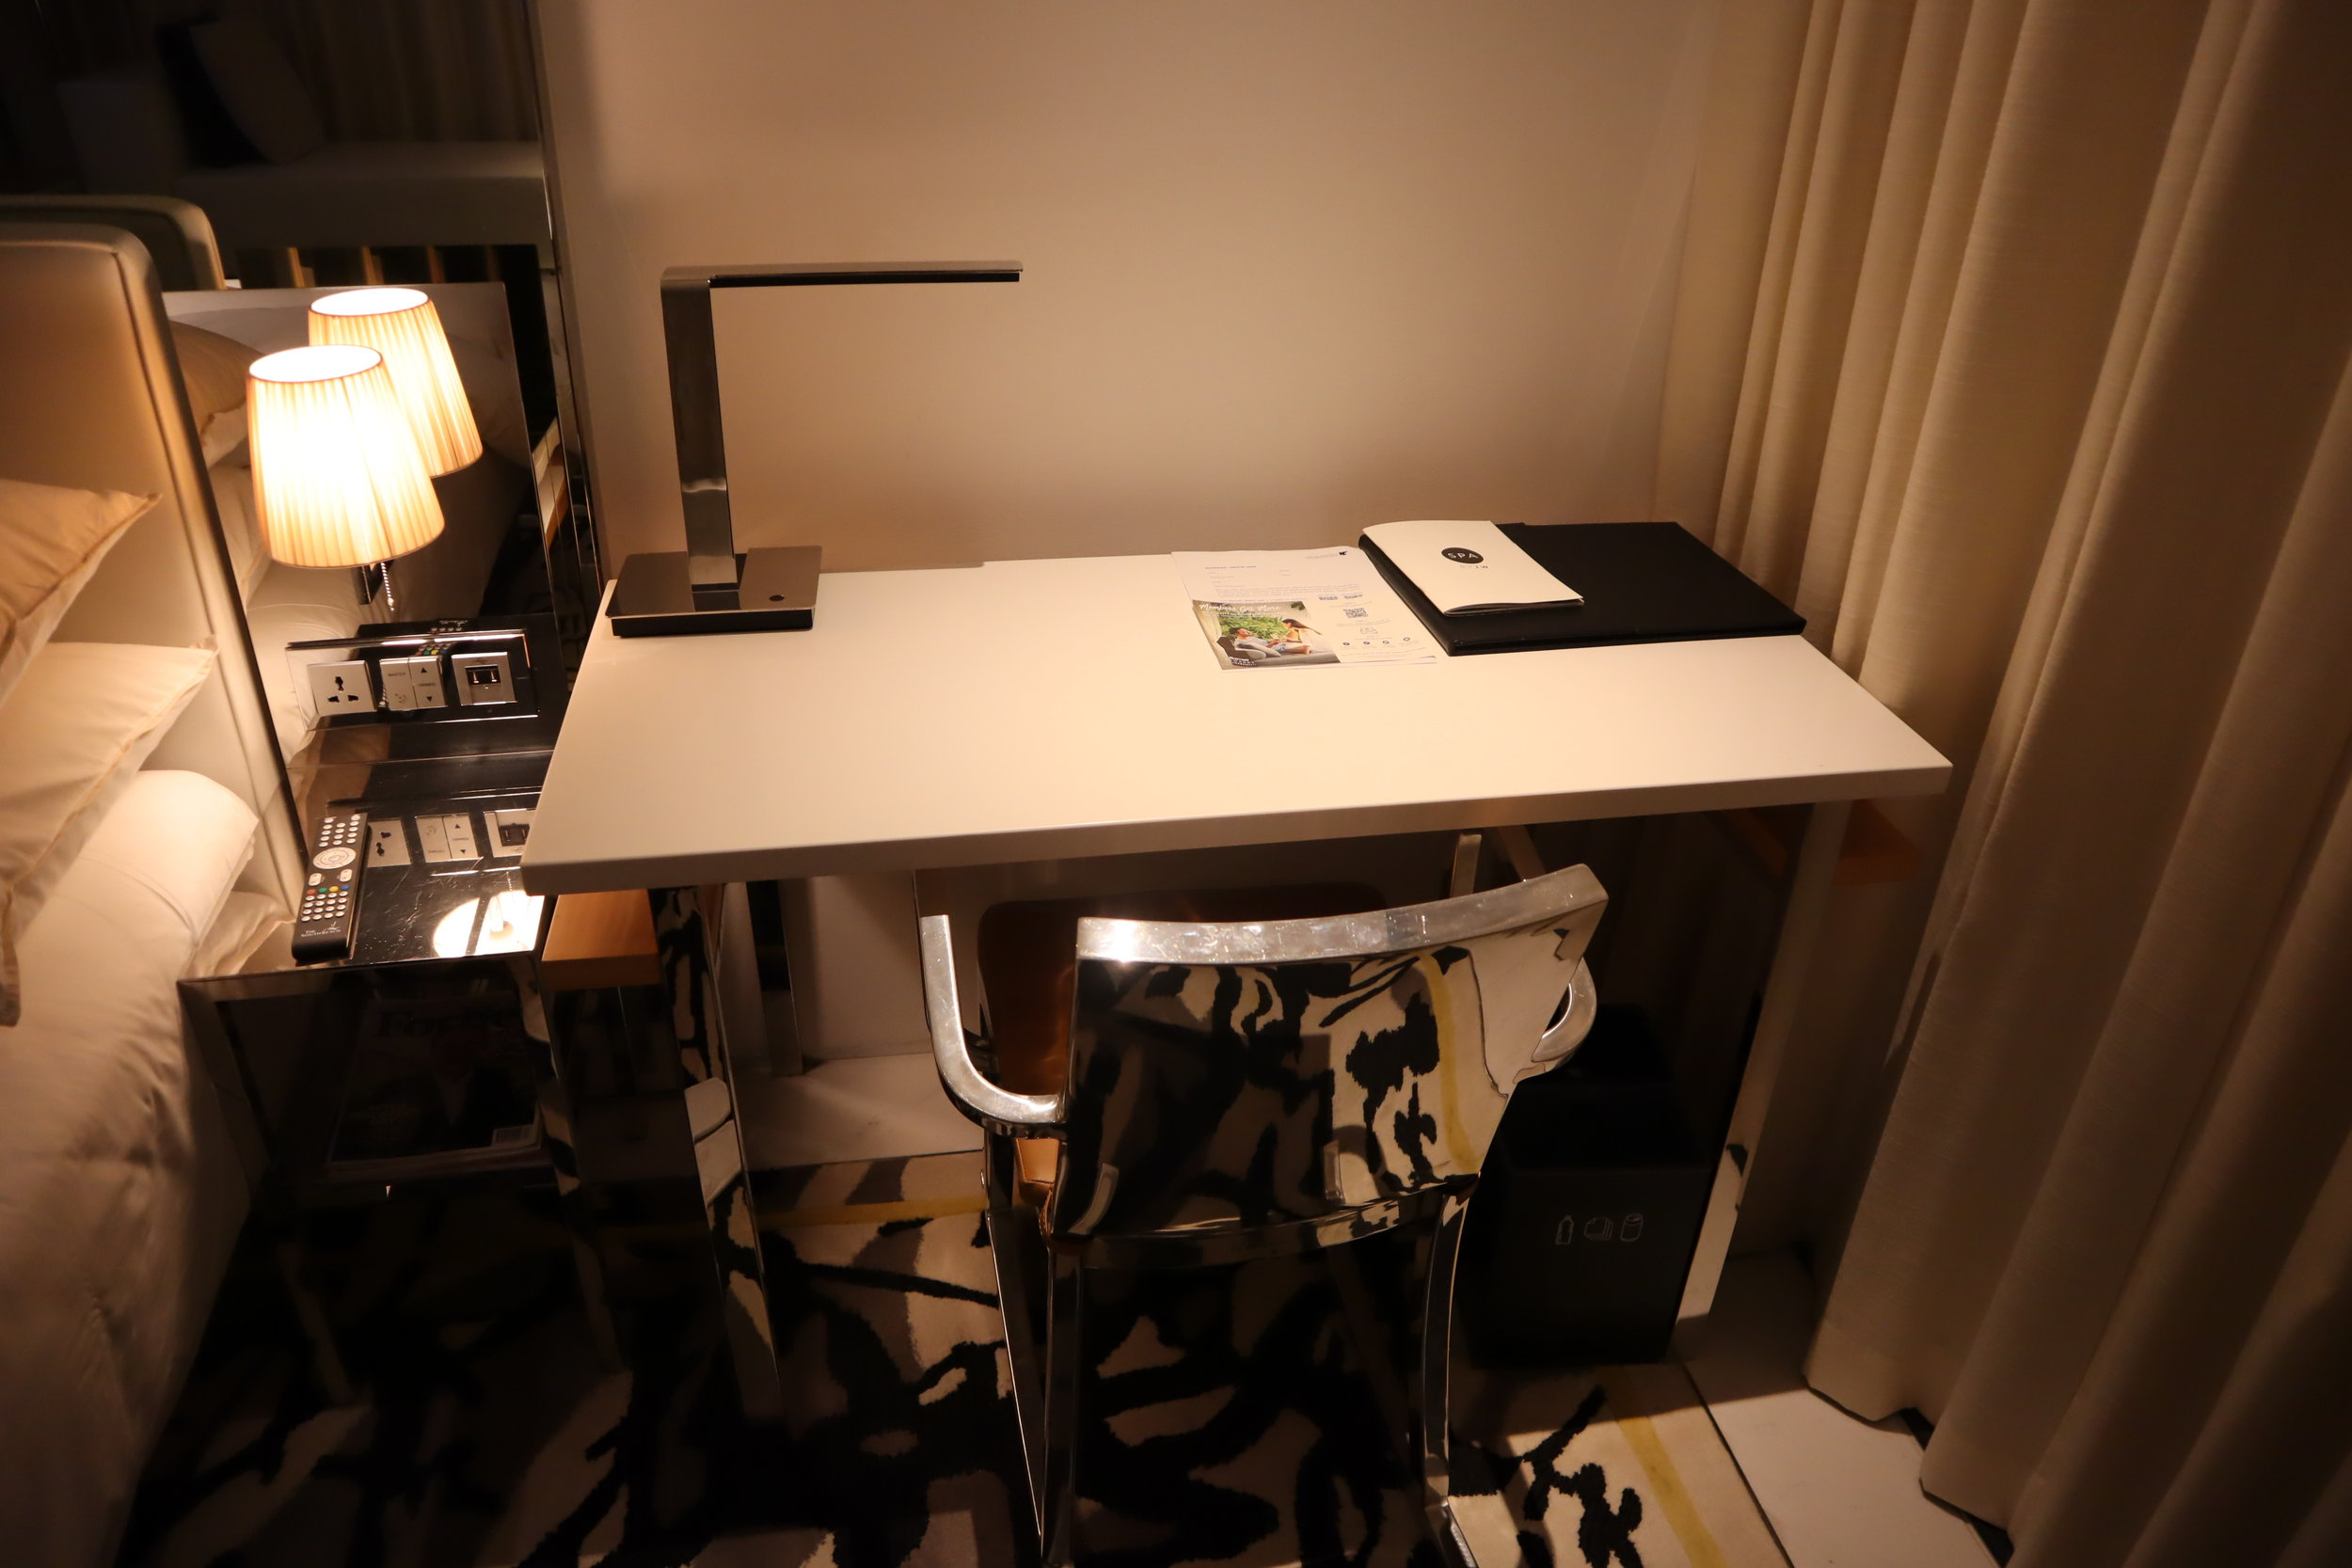 JW Marriott Singapore South Beach – Desk